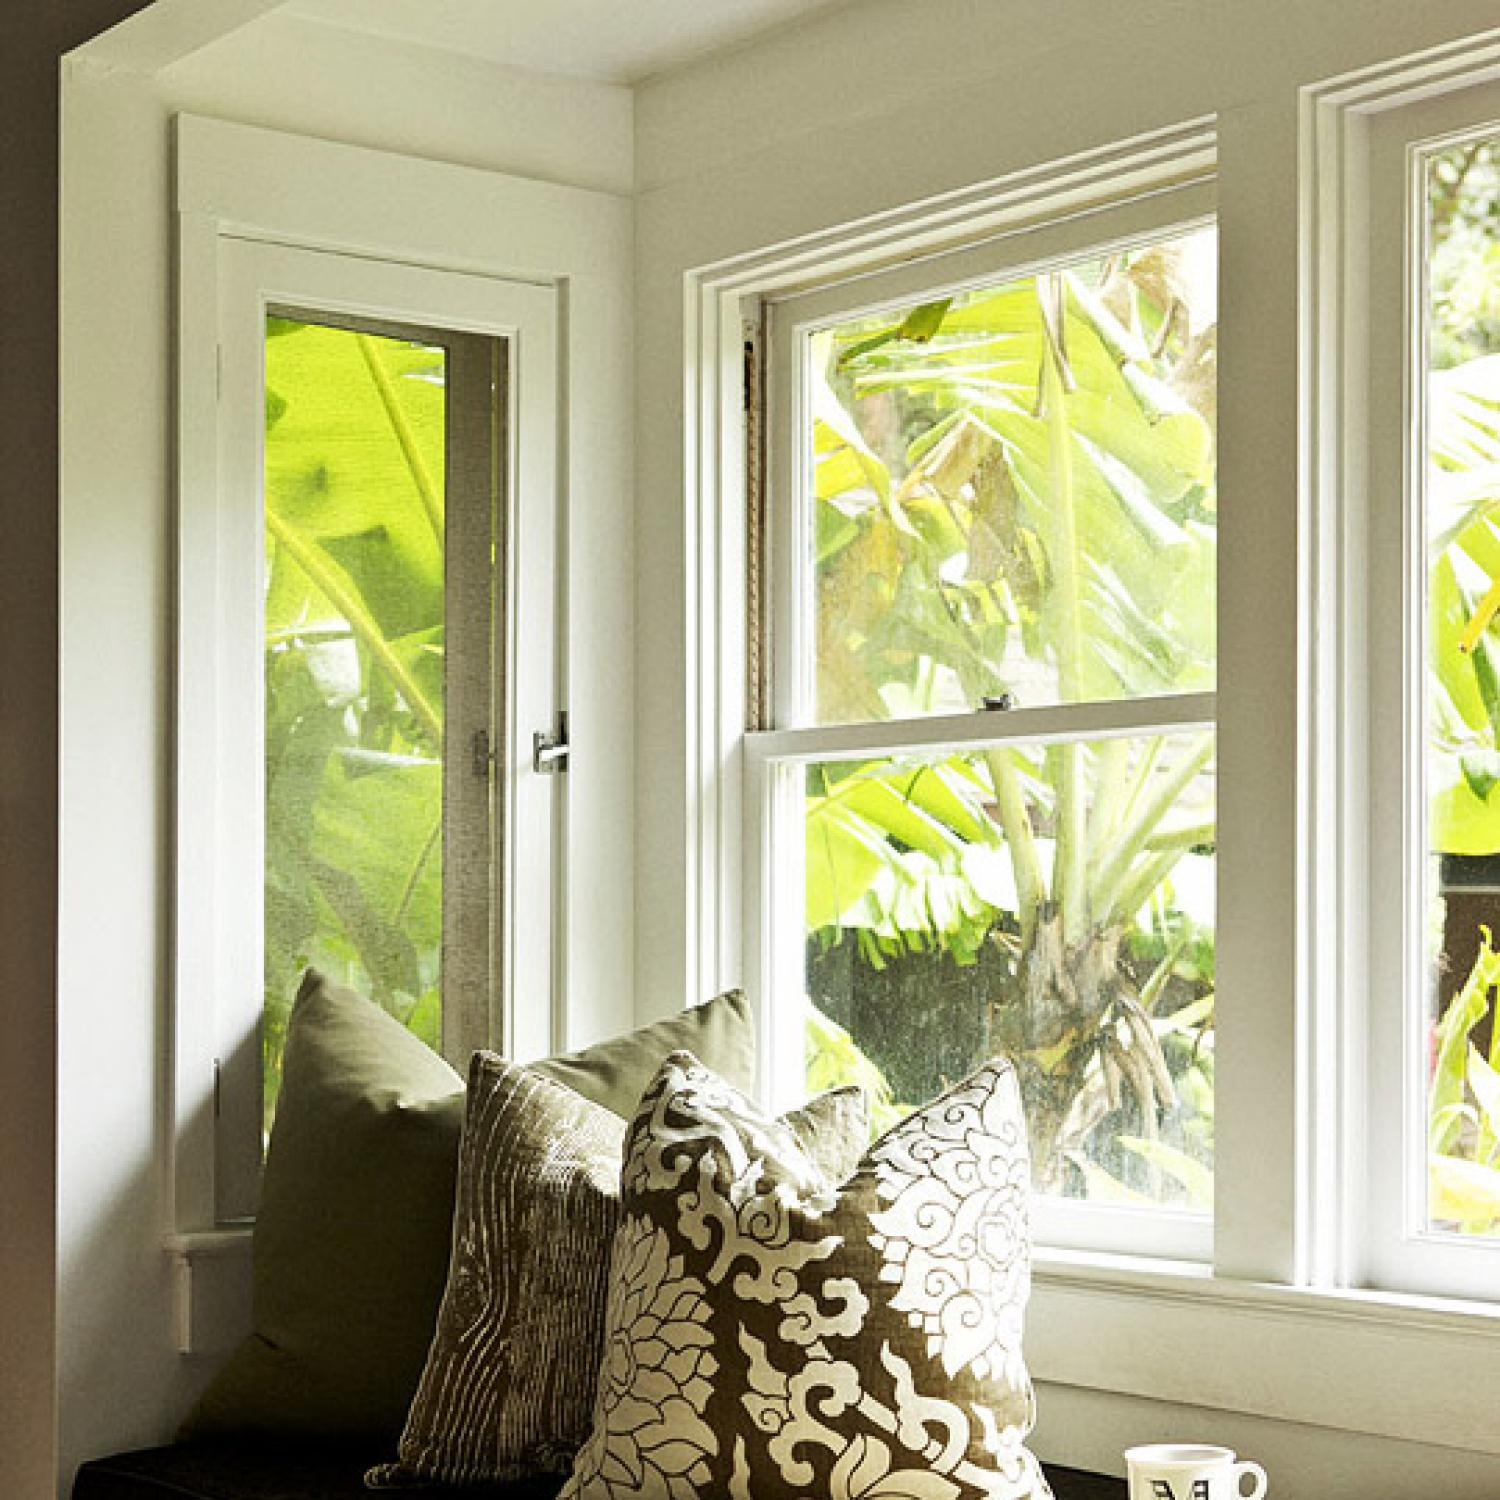 Decorating Ideas: 15 Window Seats